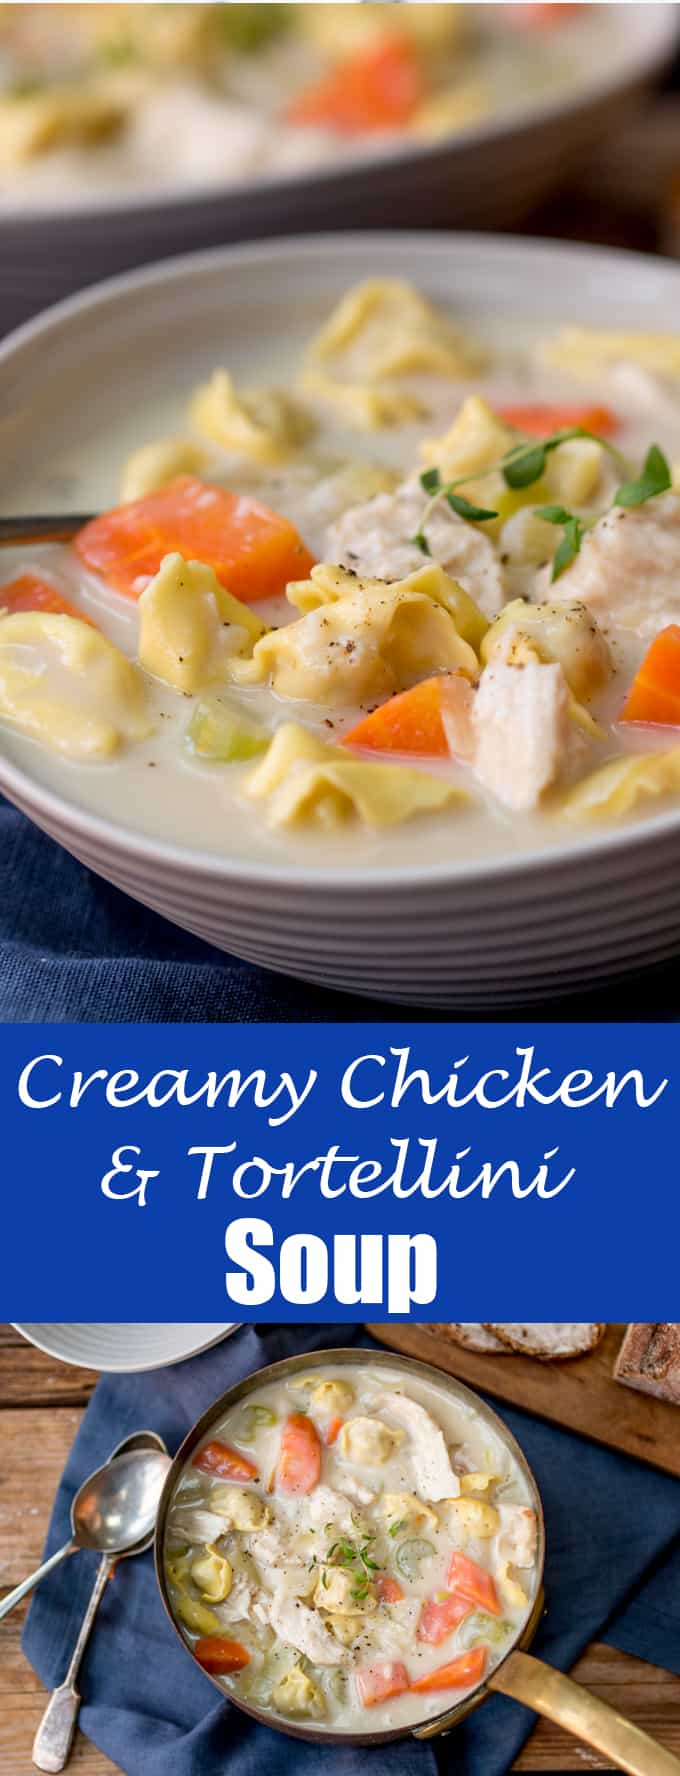 This Creamy Chicken and Tortellini Soup is serious comfort food - and substantial enough for dinner!